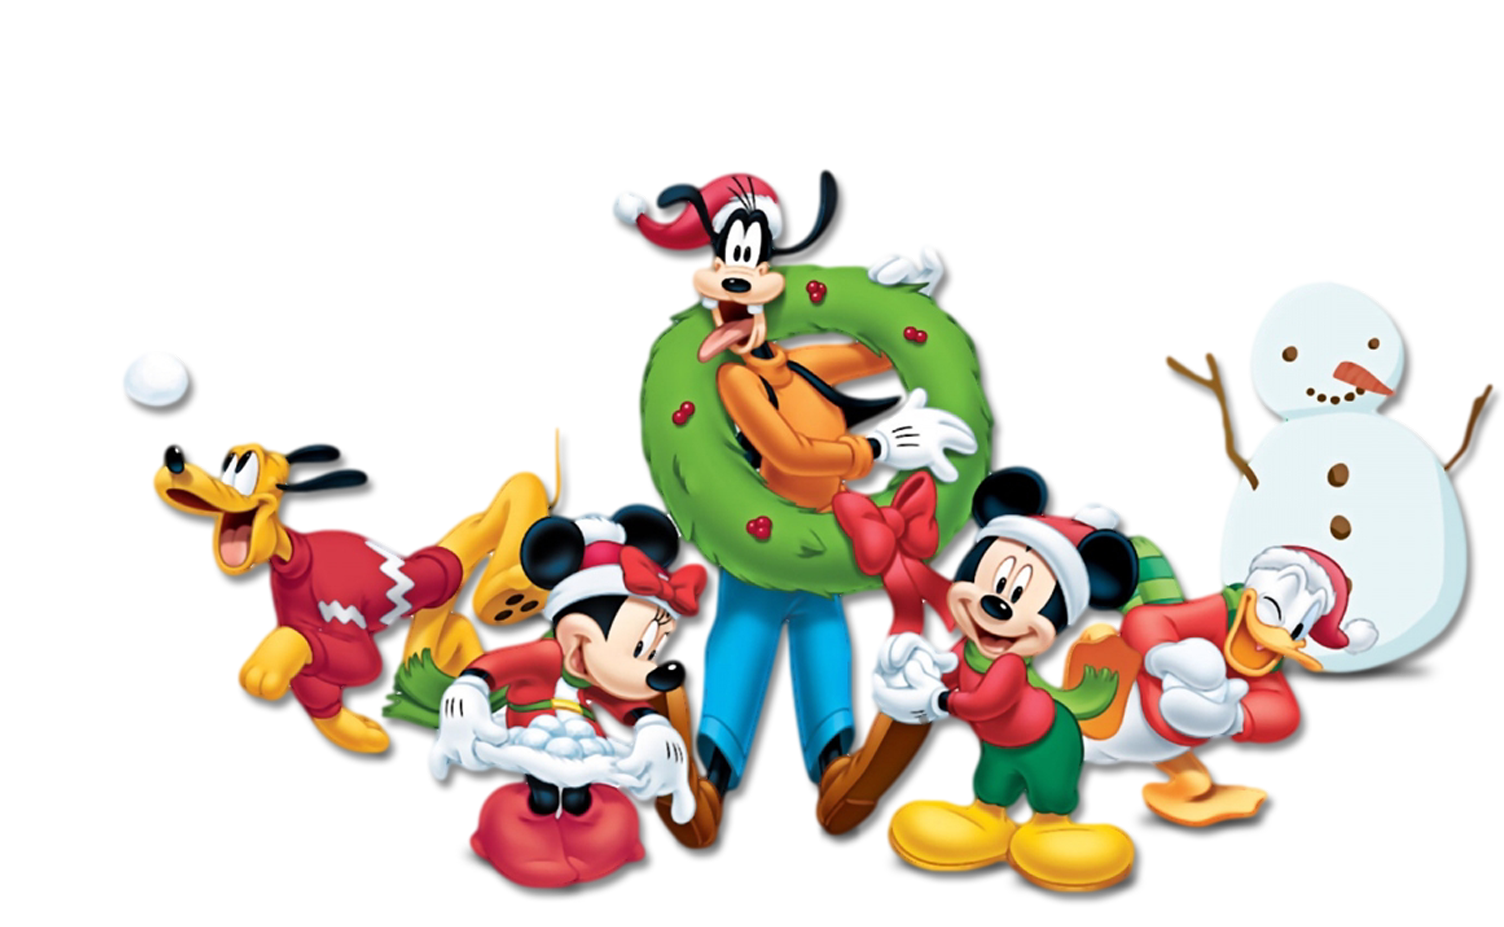 Christmas mickey png. Mouse minnie goofy pluto